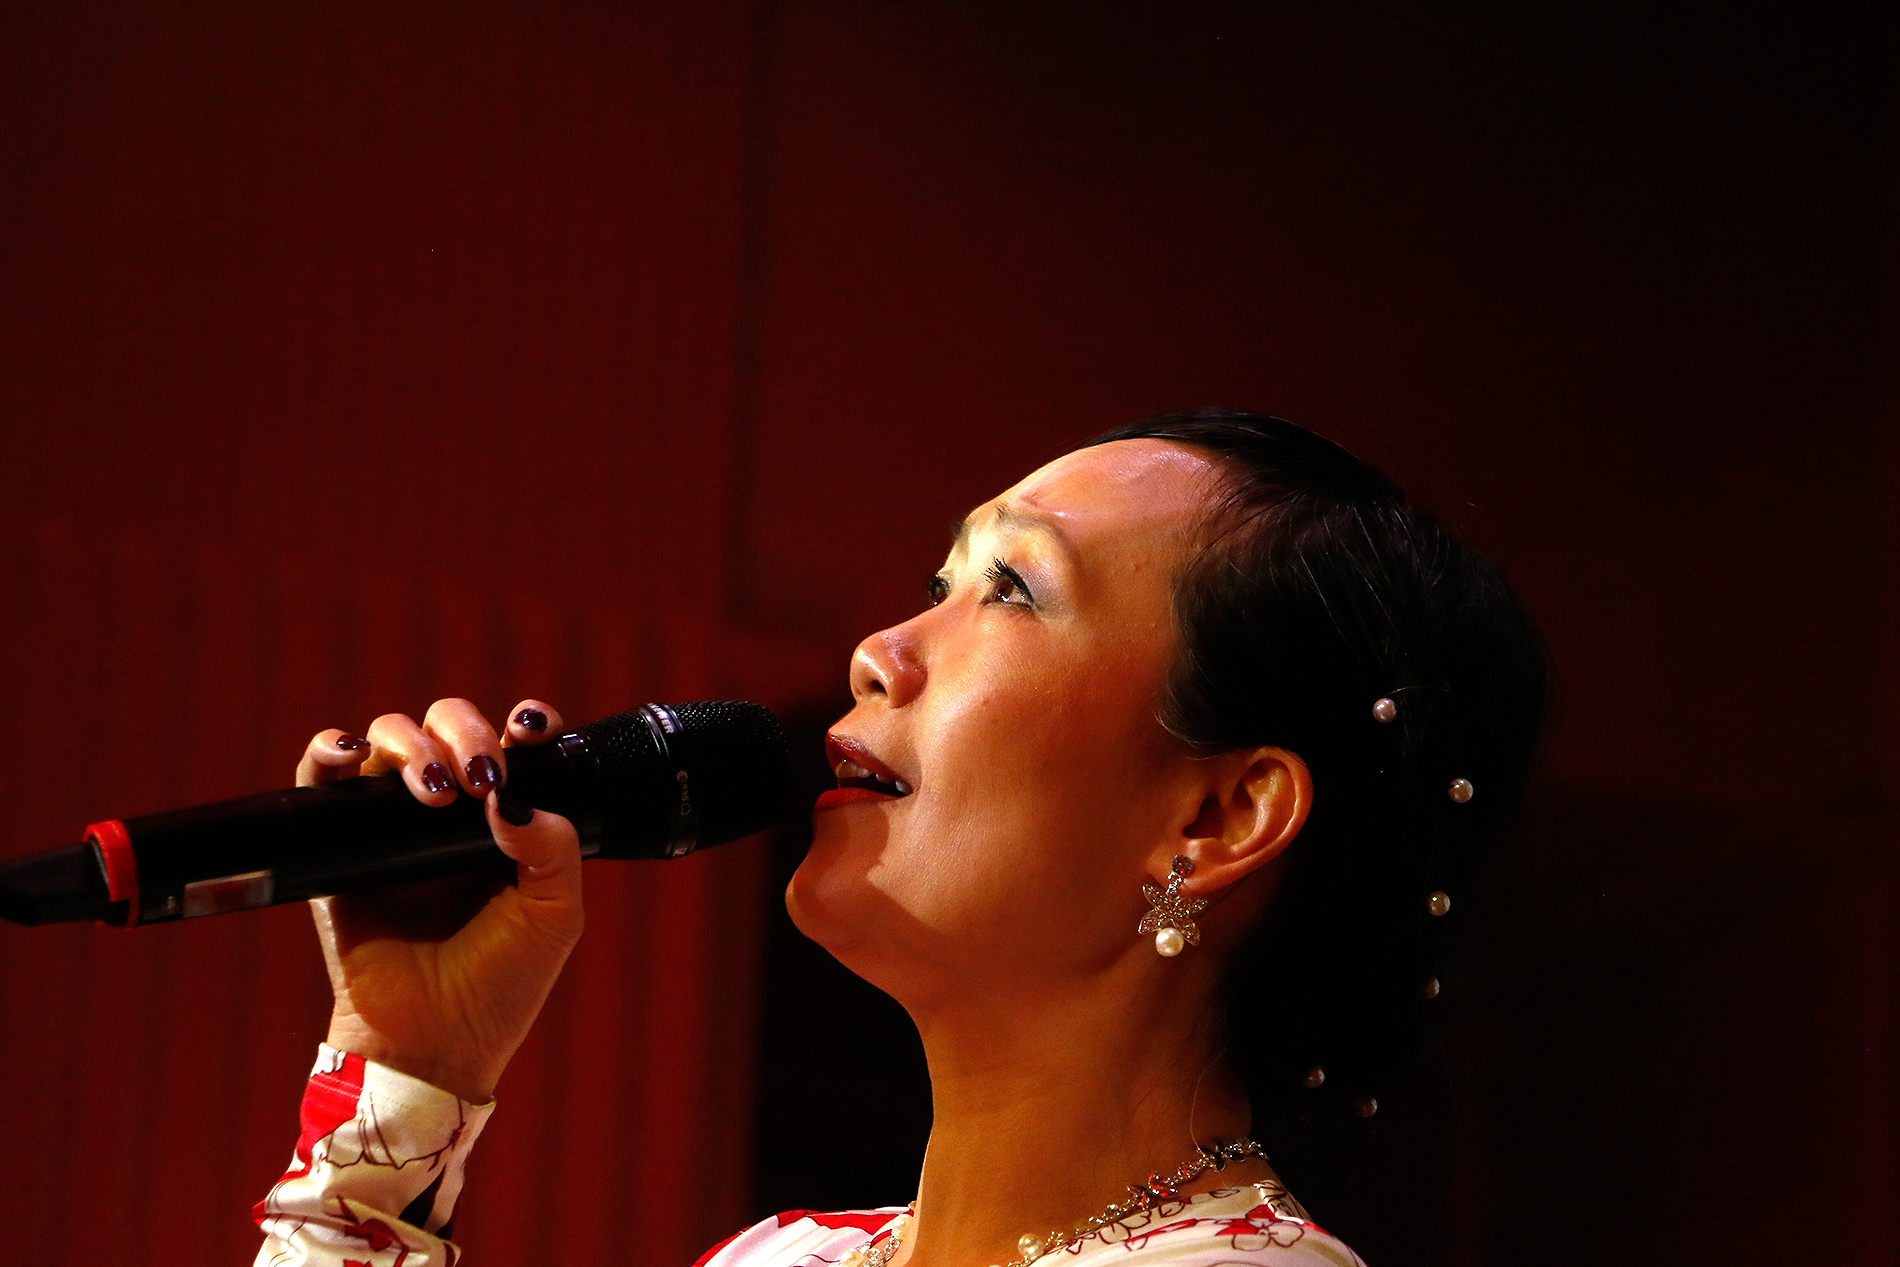 Changling He was a popular singer in China. At the casino, she showcases her talent by performing a song from 'The Bund,' a Hong Kong period drama television series from the 1980s. Picture: Tony Öhberg for Finland Today